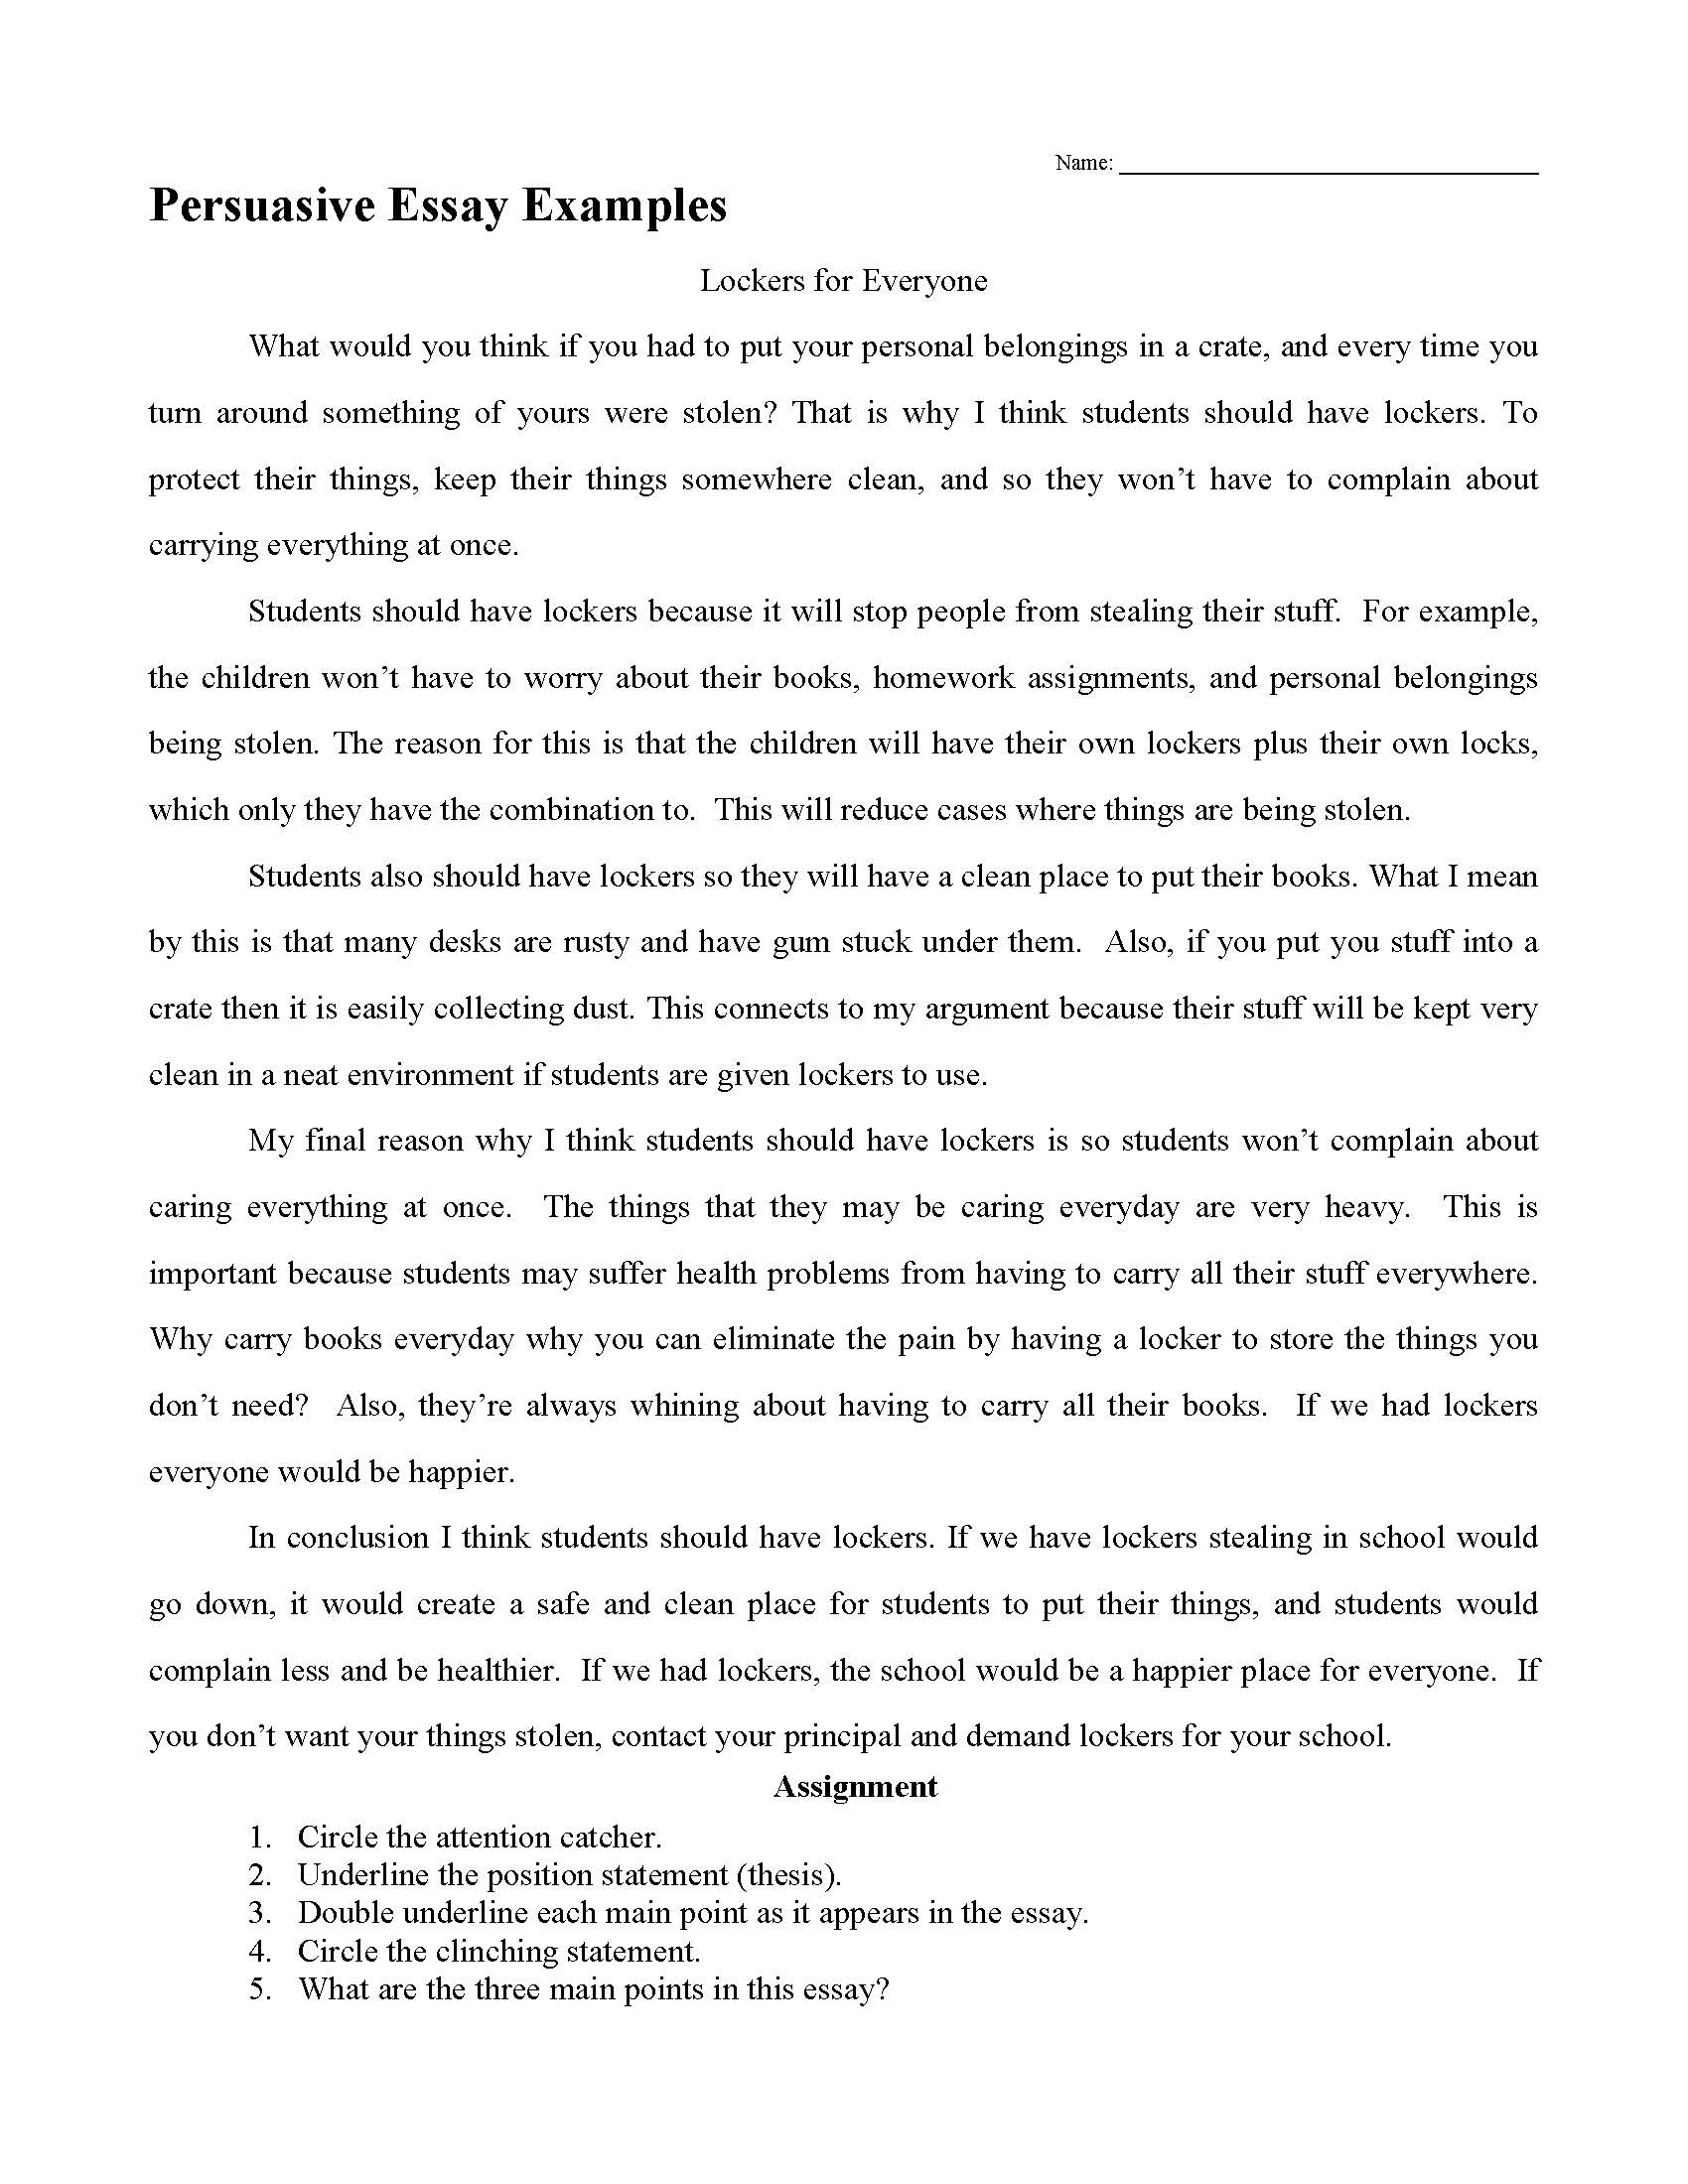 001 Persuasive Essays Impressive Essay Examples For Middle School Staar Full